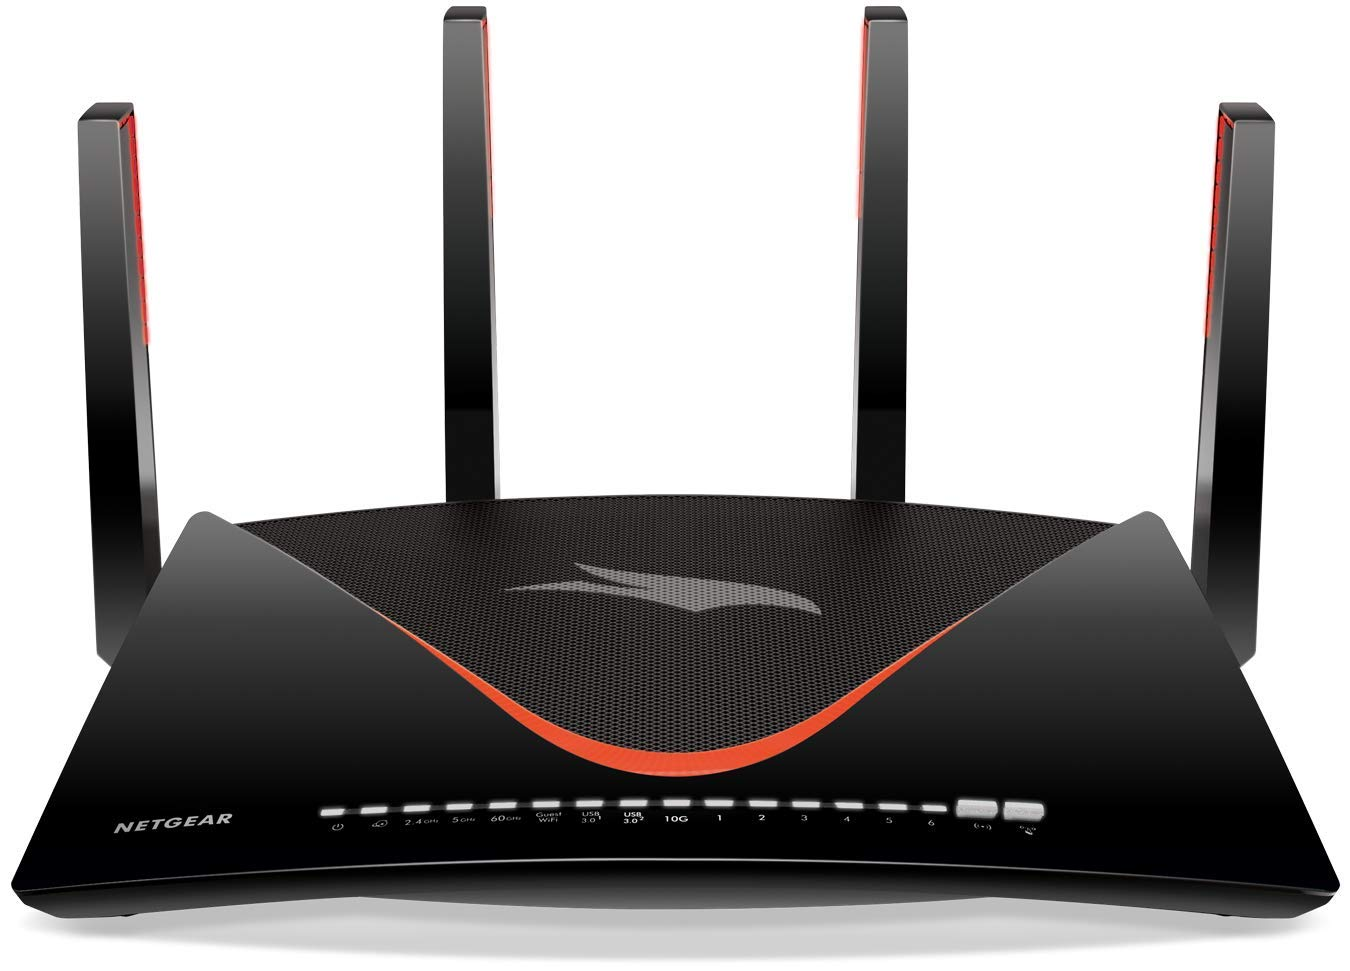 Netgear Nighthawk XR700-100EUS - Router WiFi Nighthawk Pro Gaming (AD7200 Dual-Band Quad Stream Gigabit, tablero Gaming, Geo Filter, Calidad del Servicio ...